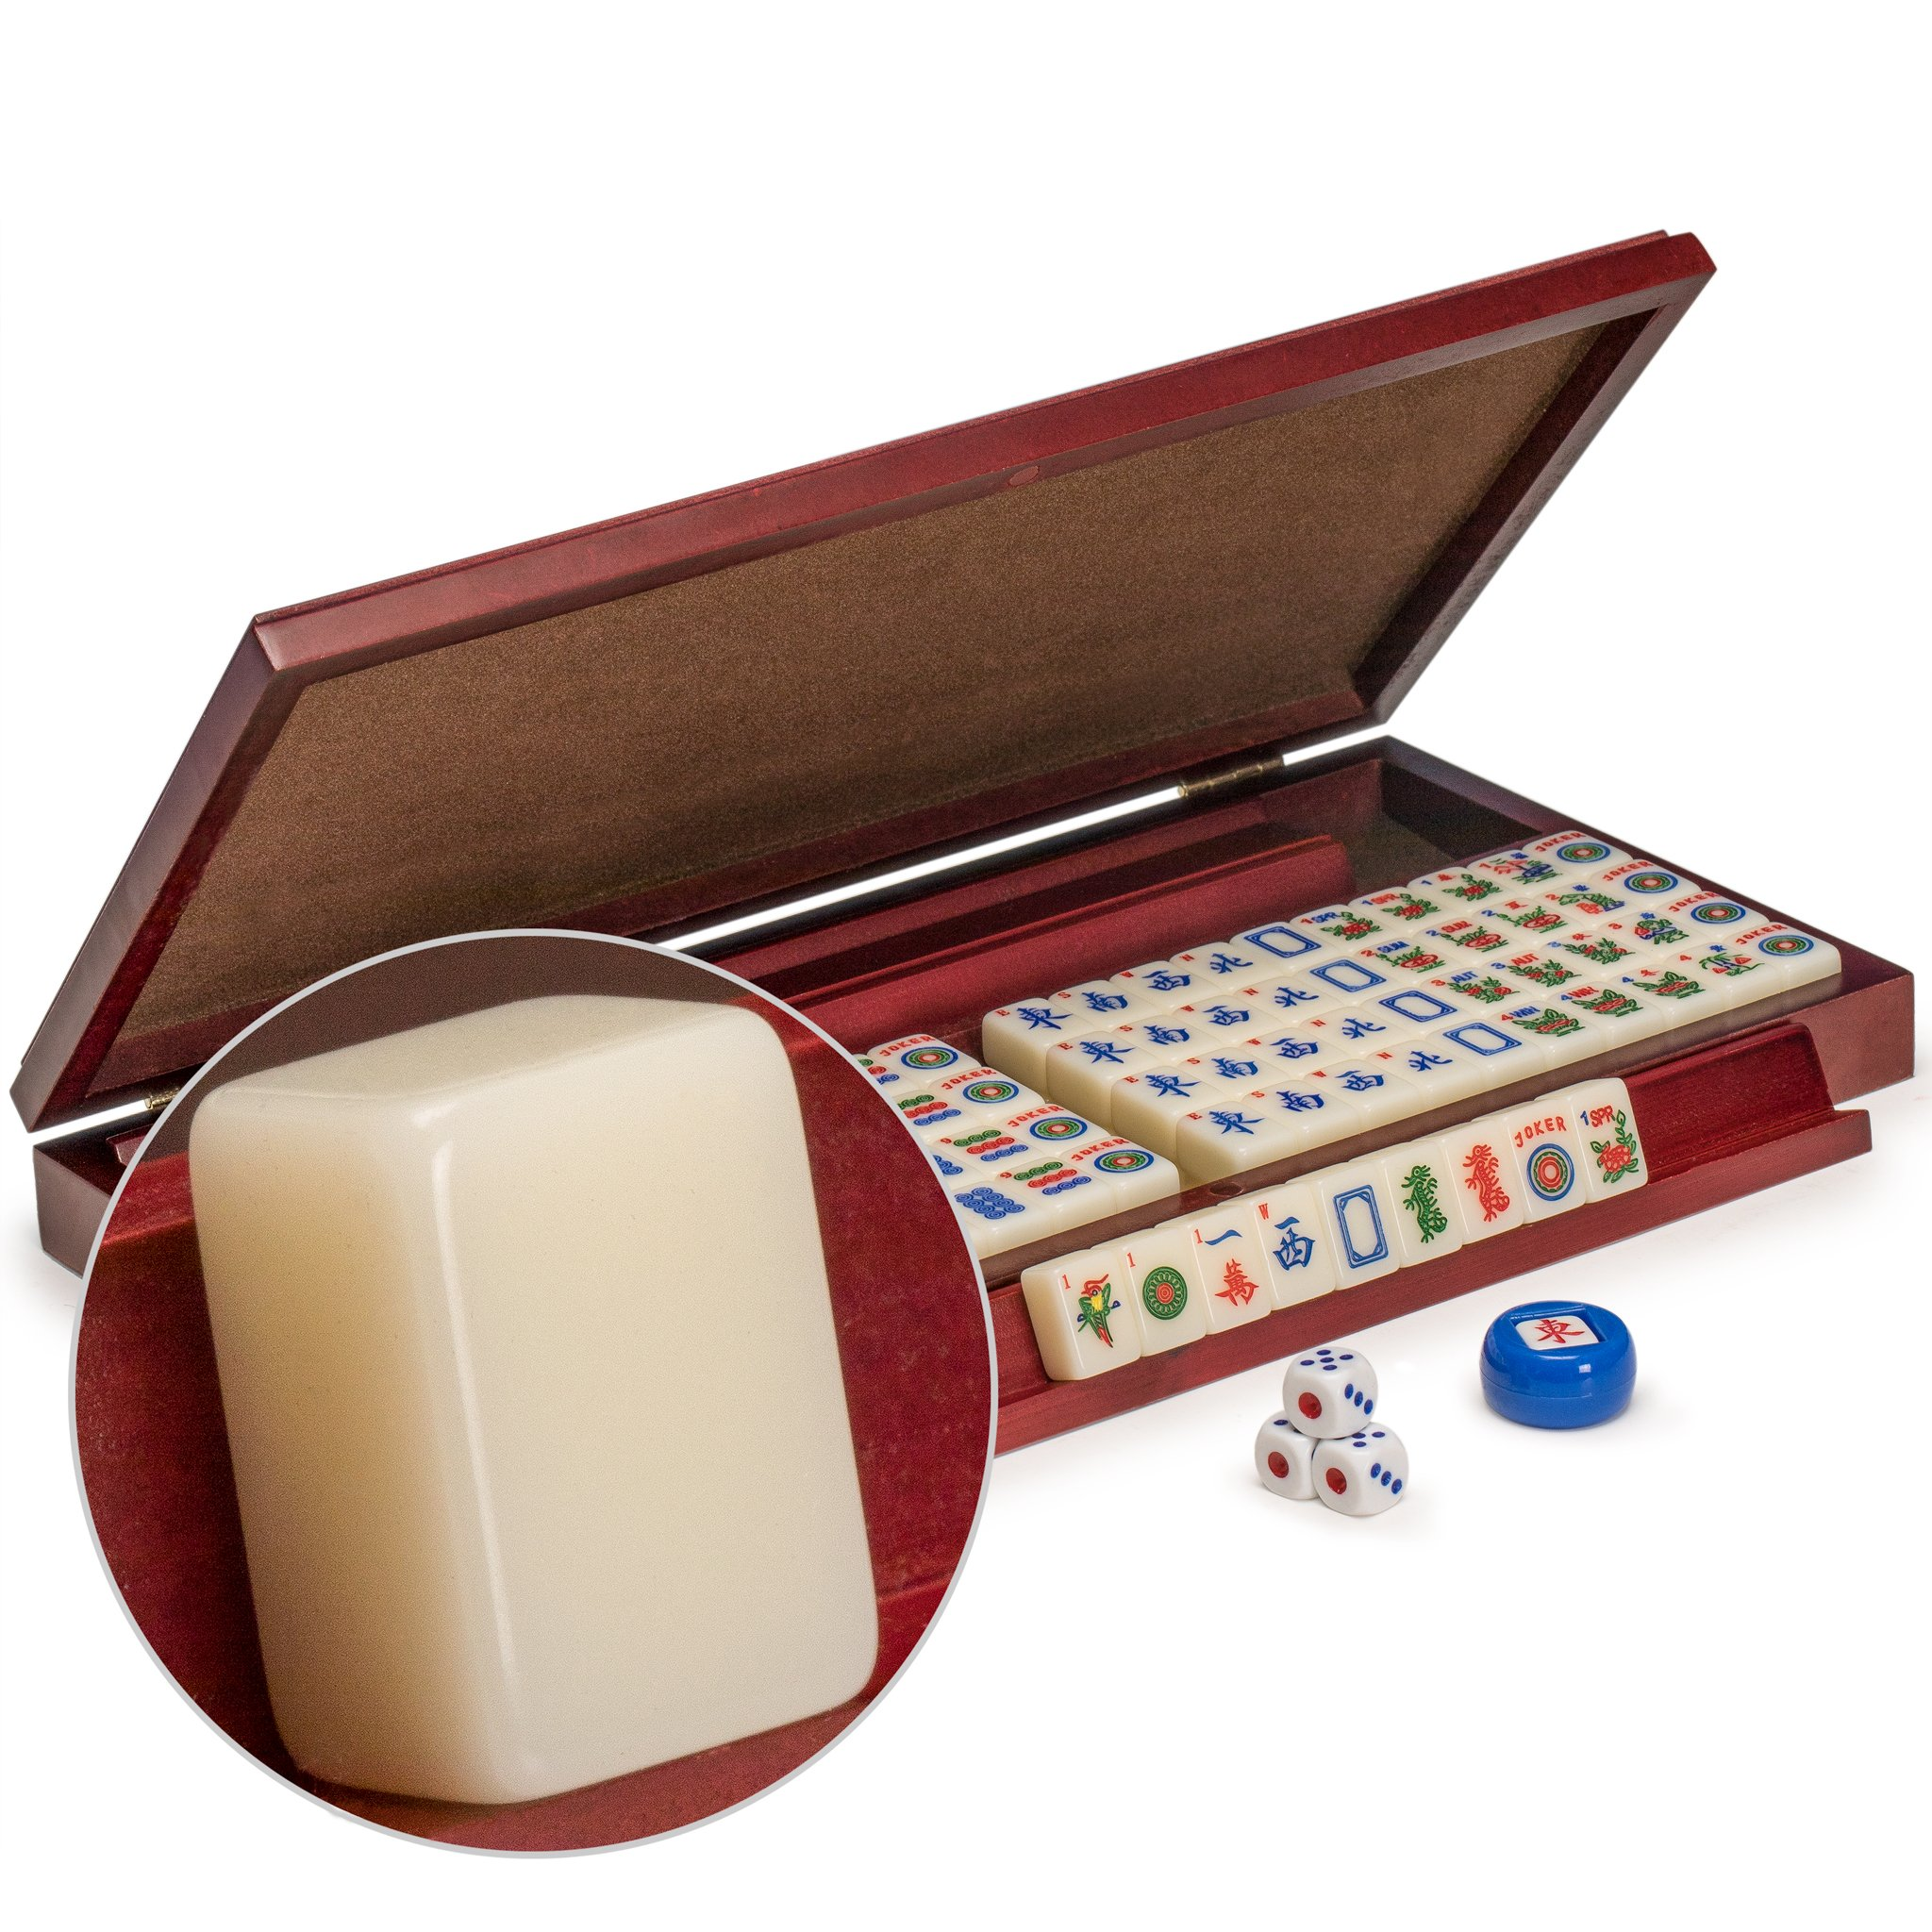 Yellow Mountain Imports American Mahjong Set, Mini Classic Tiles with Portable Vinyl Case - Four Wooden Racks, Dice, & Wind Indicator